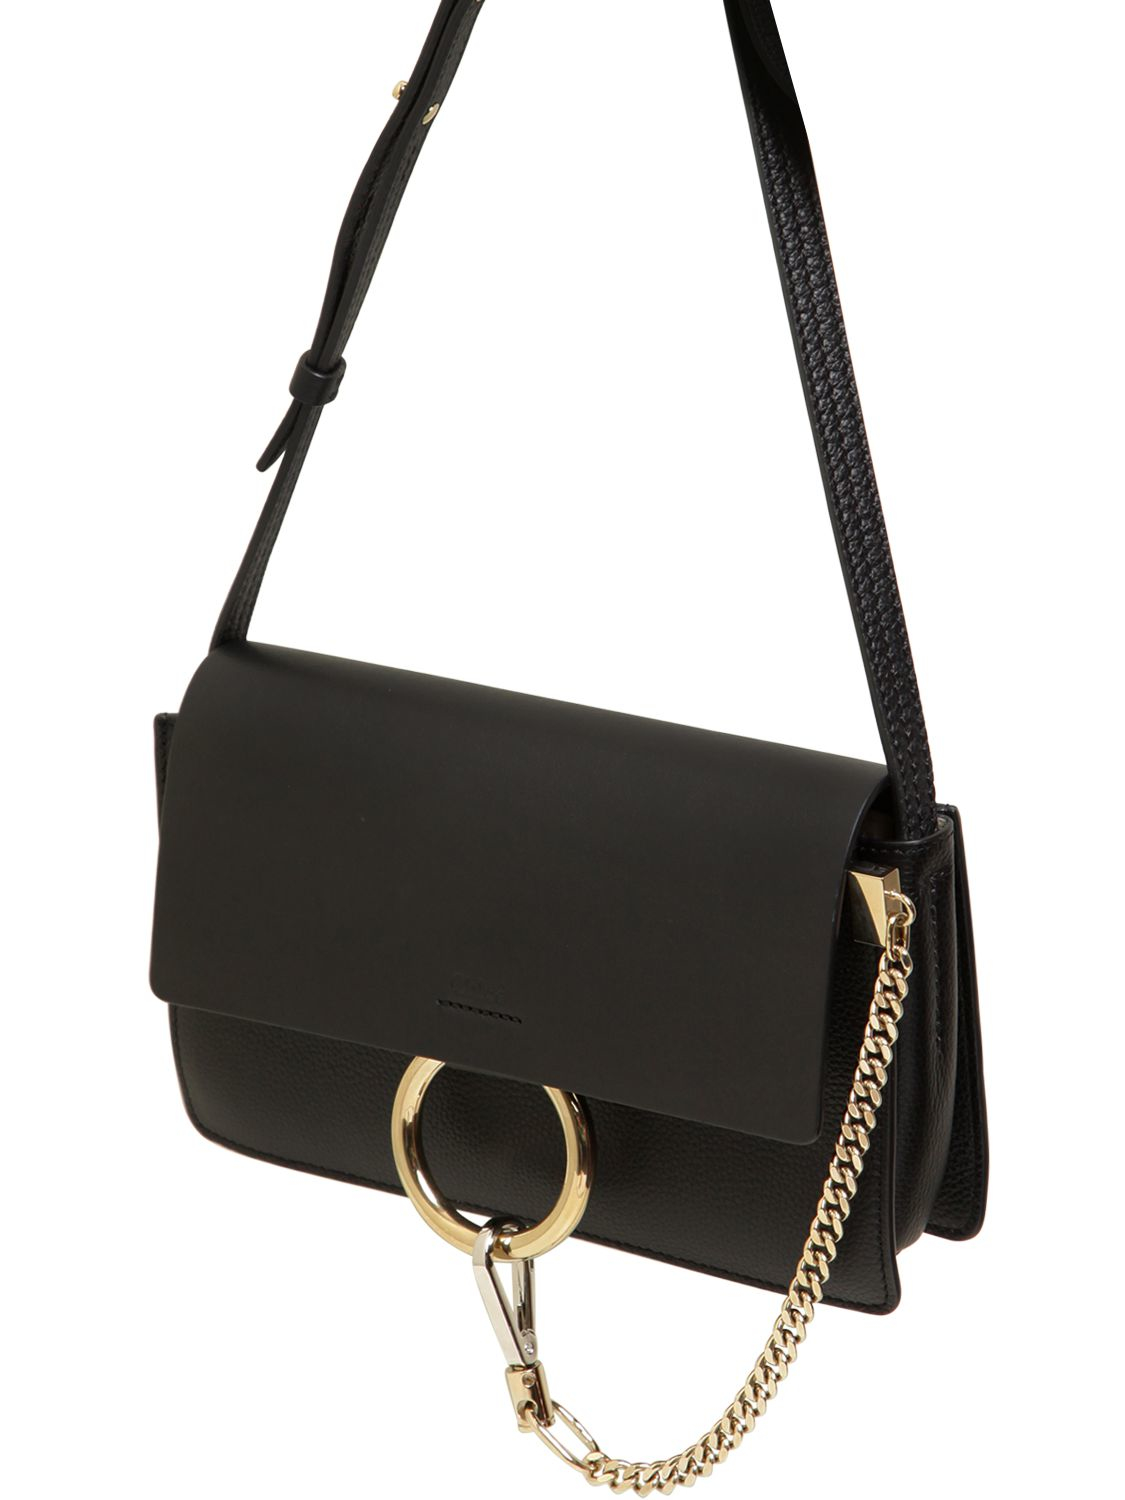 Lyst - Chloé Small Faye Grained   Smooth Leather Bag in Black 879974cc4586a